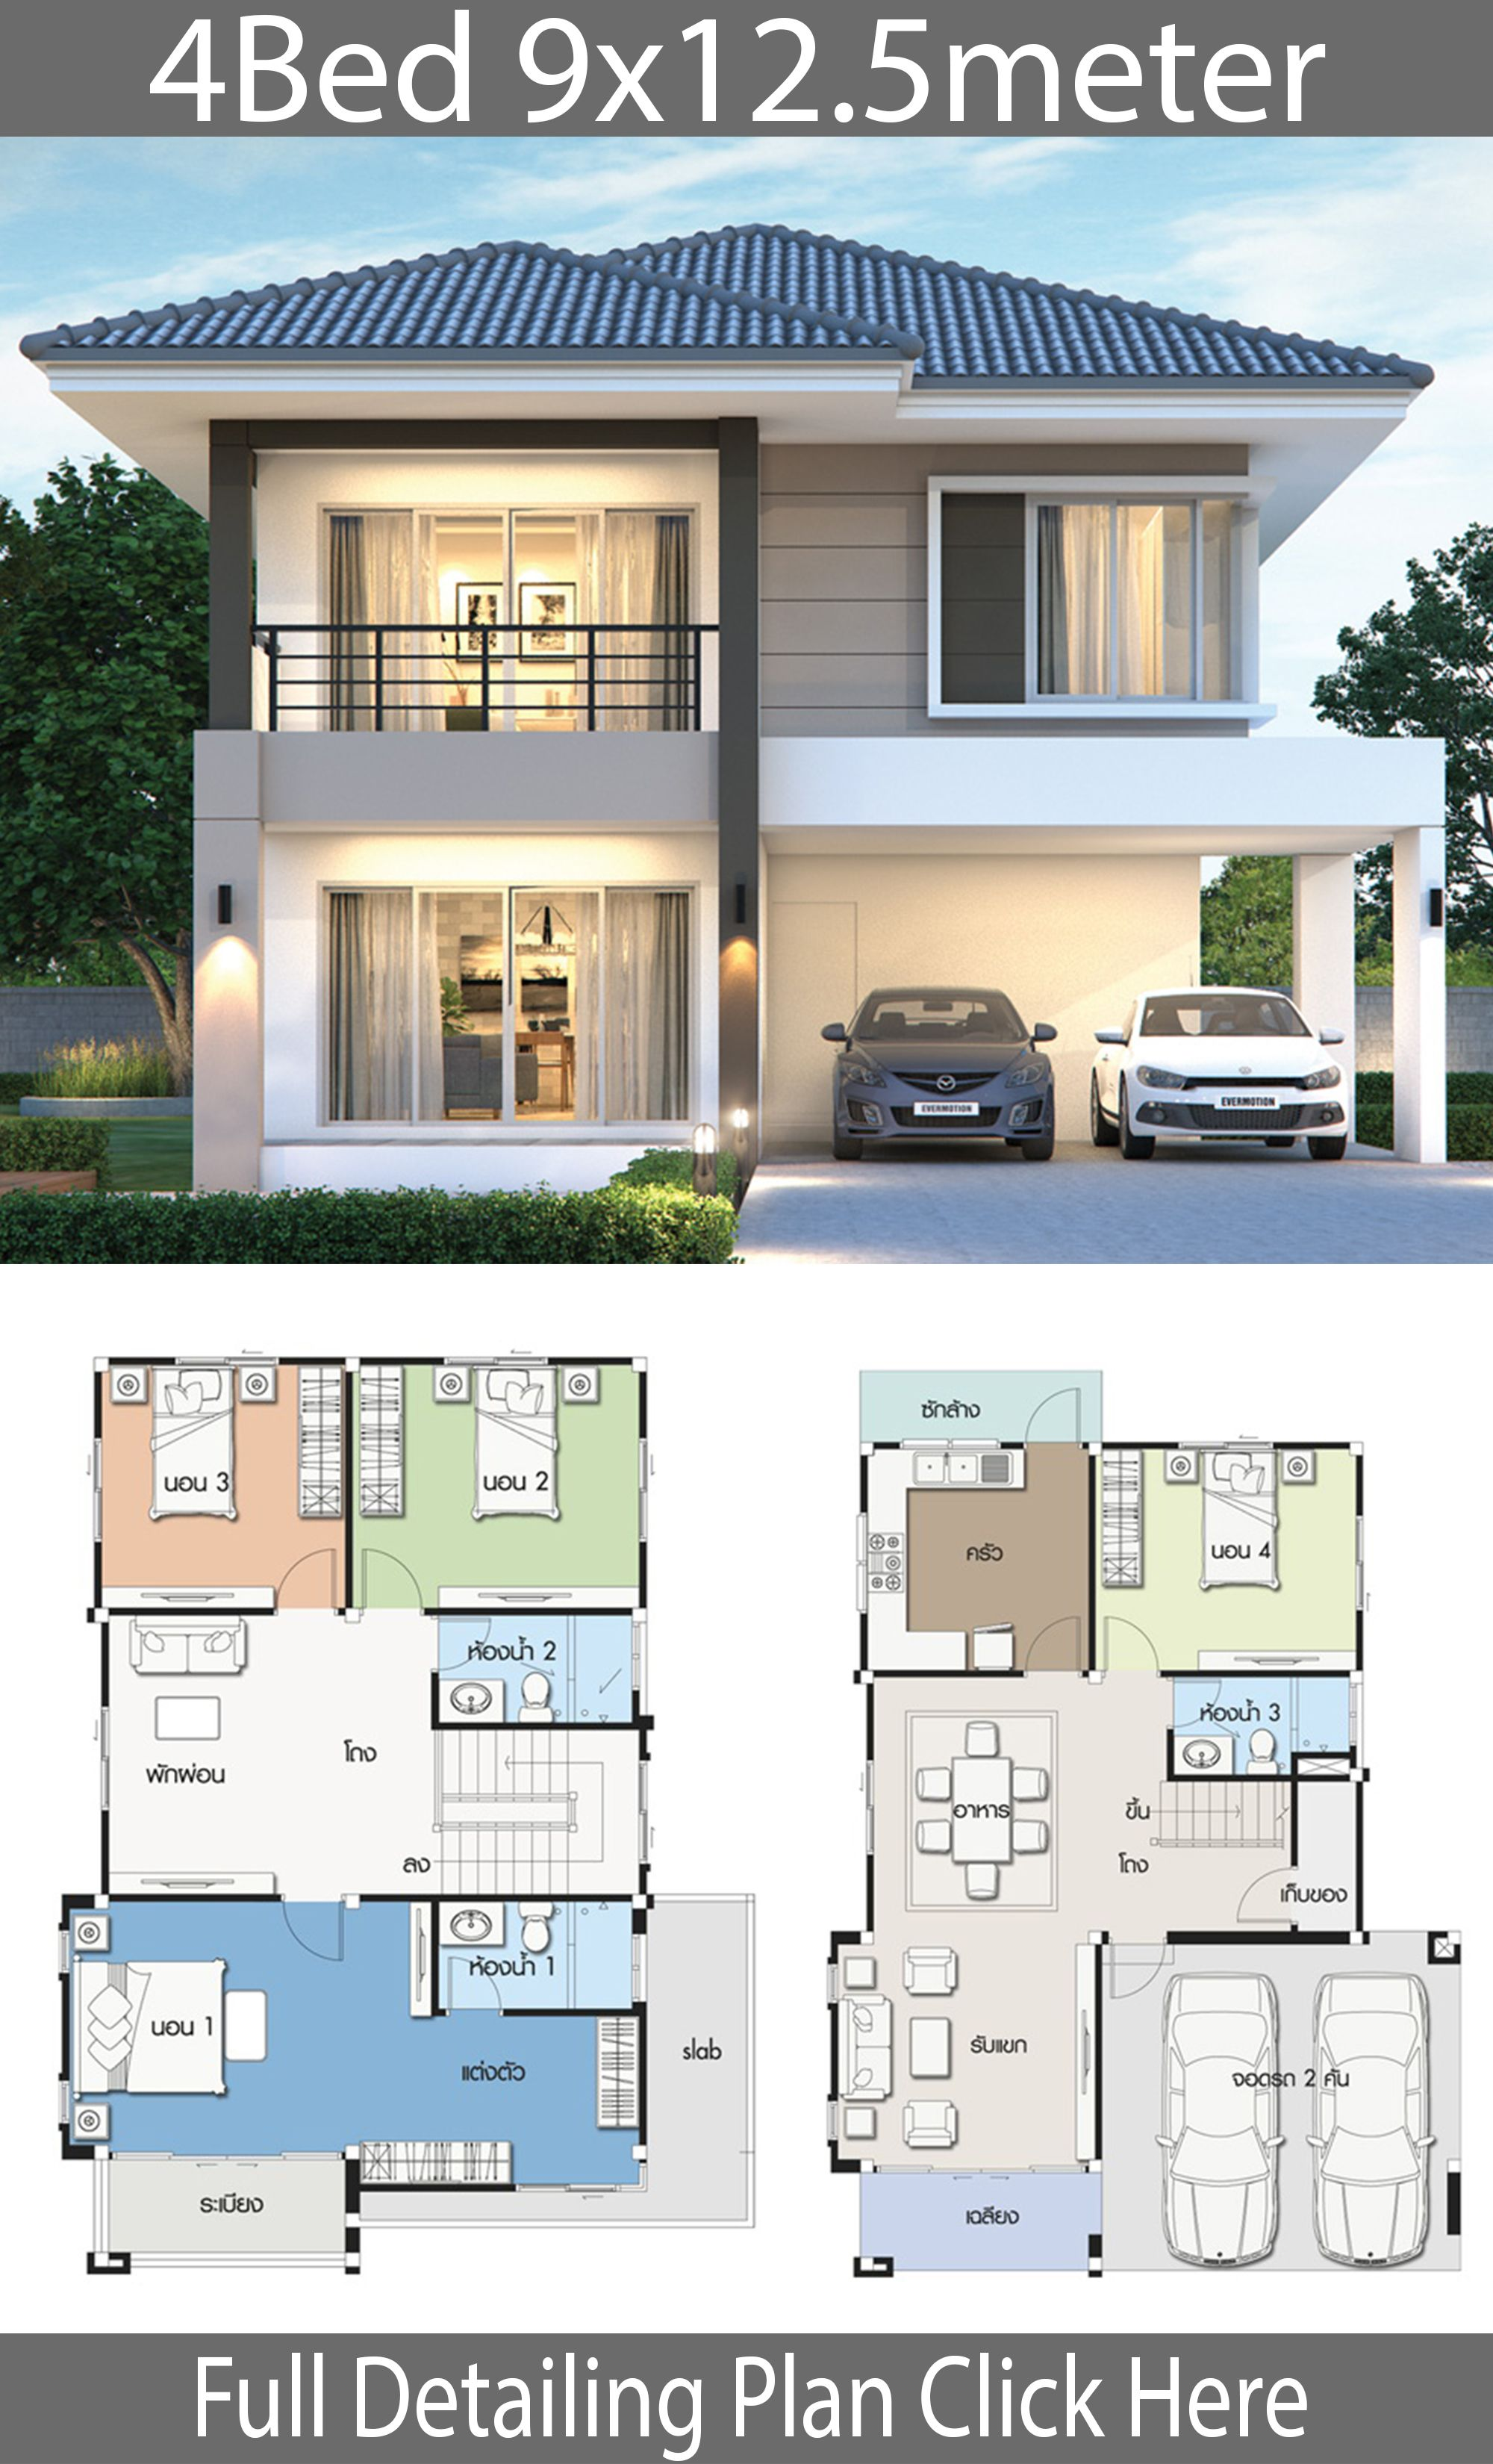 House Design Plan 9x12 5m With 4 Bedroom House Idea Duplex House Design Bungalow House Design Model House Plan